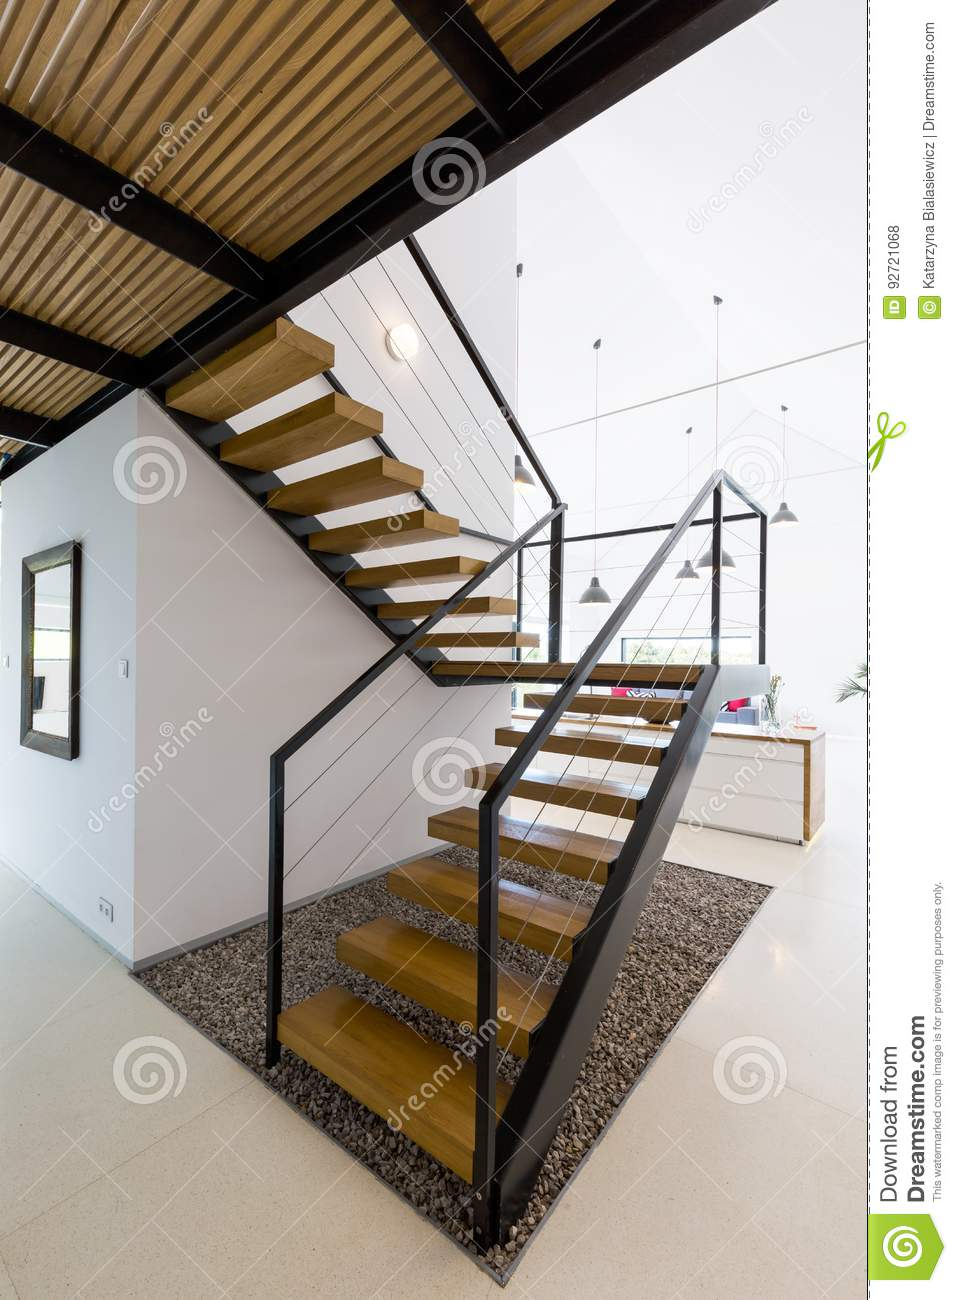 Escalier en bois moderne photo stock. Image du moderne ...